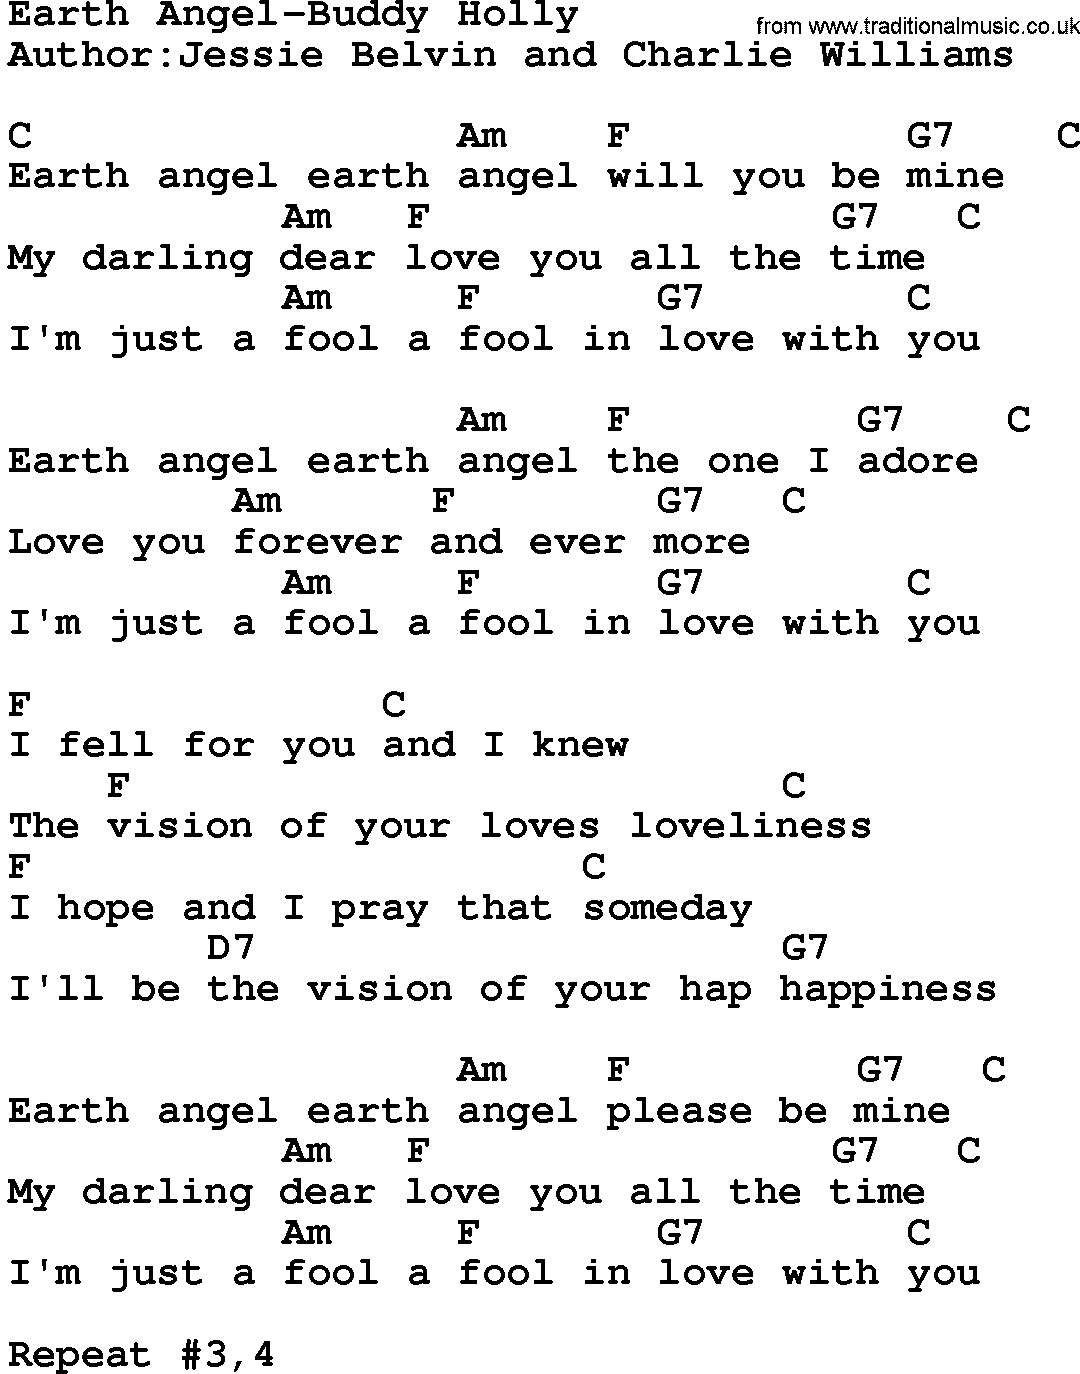 Country musicearth angel buddy holly lyrics and chords hexwebz Image collections